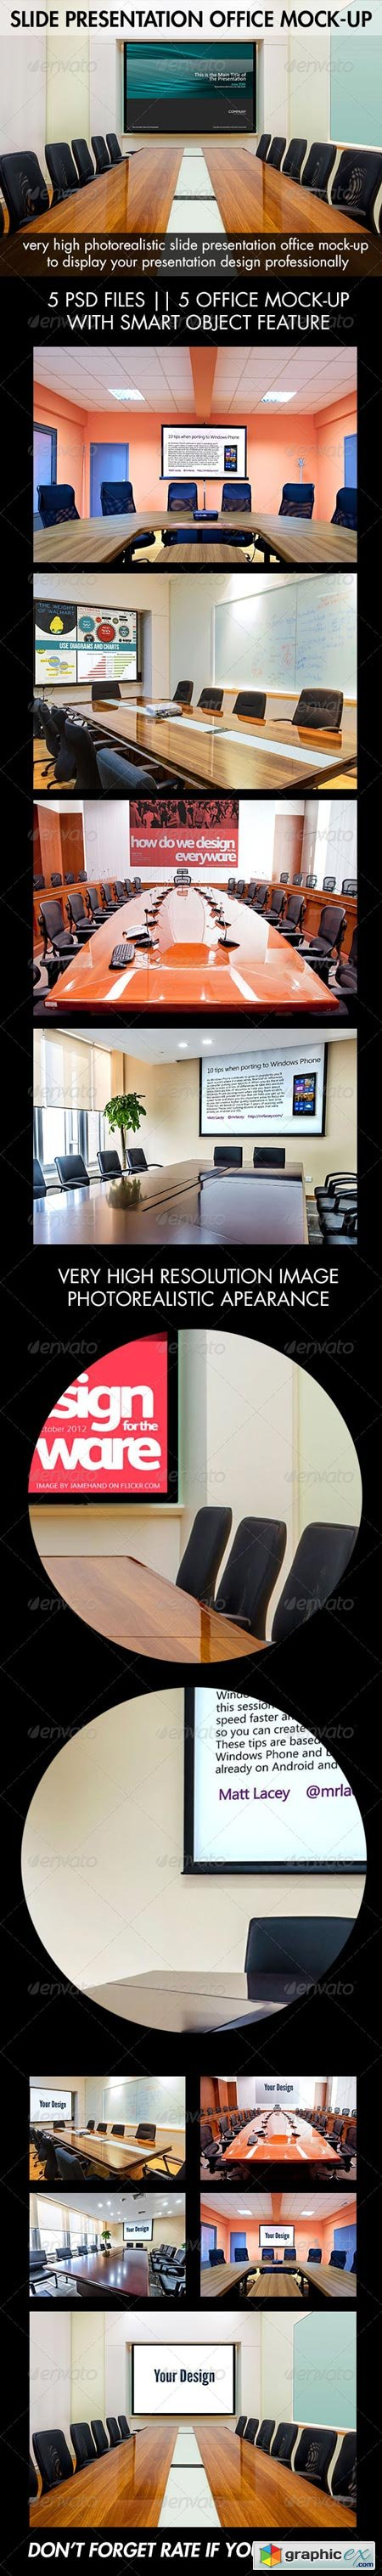 Slide Presentation Office Mock-Up 8737289